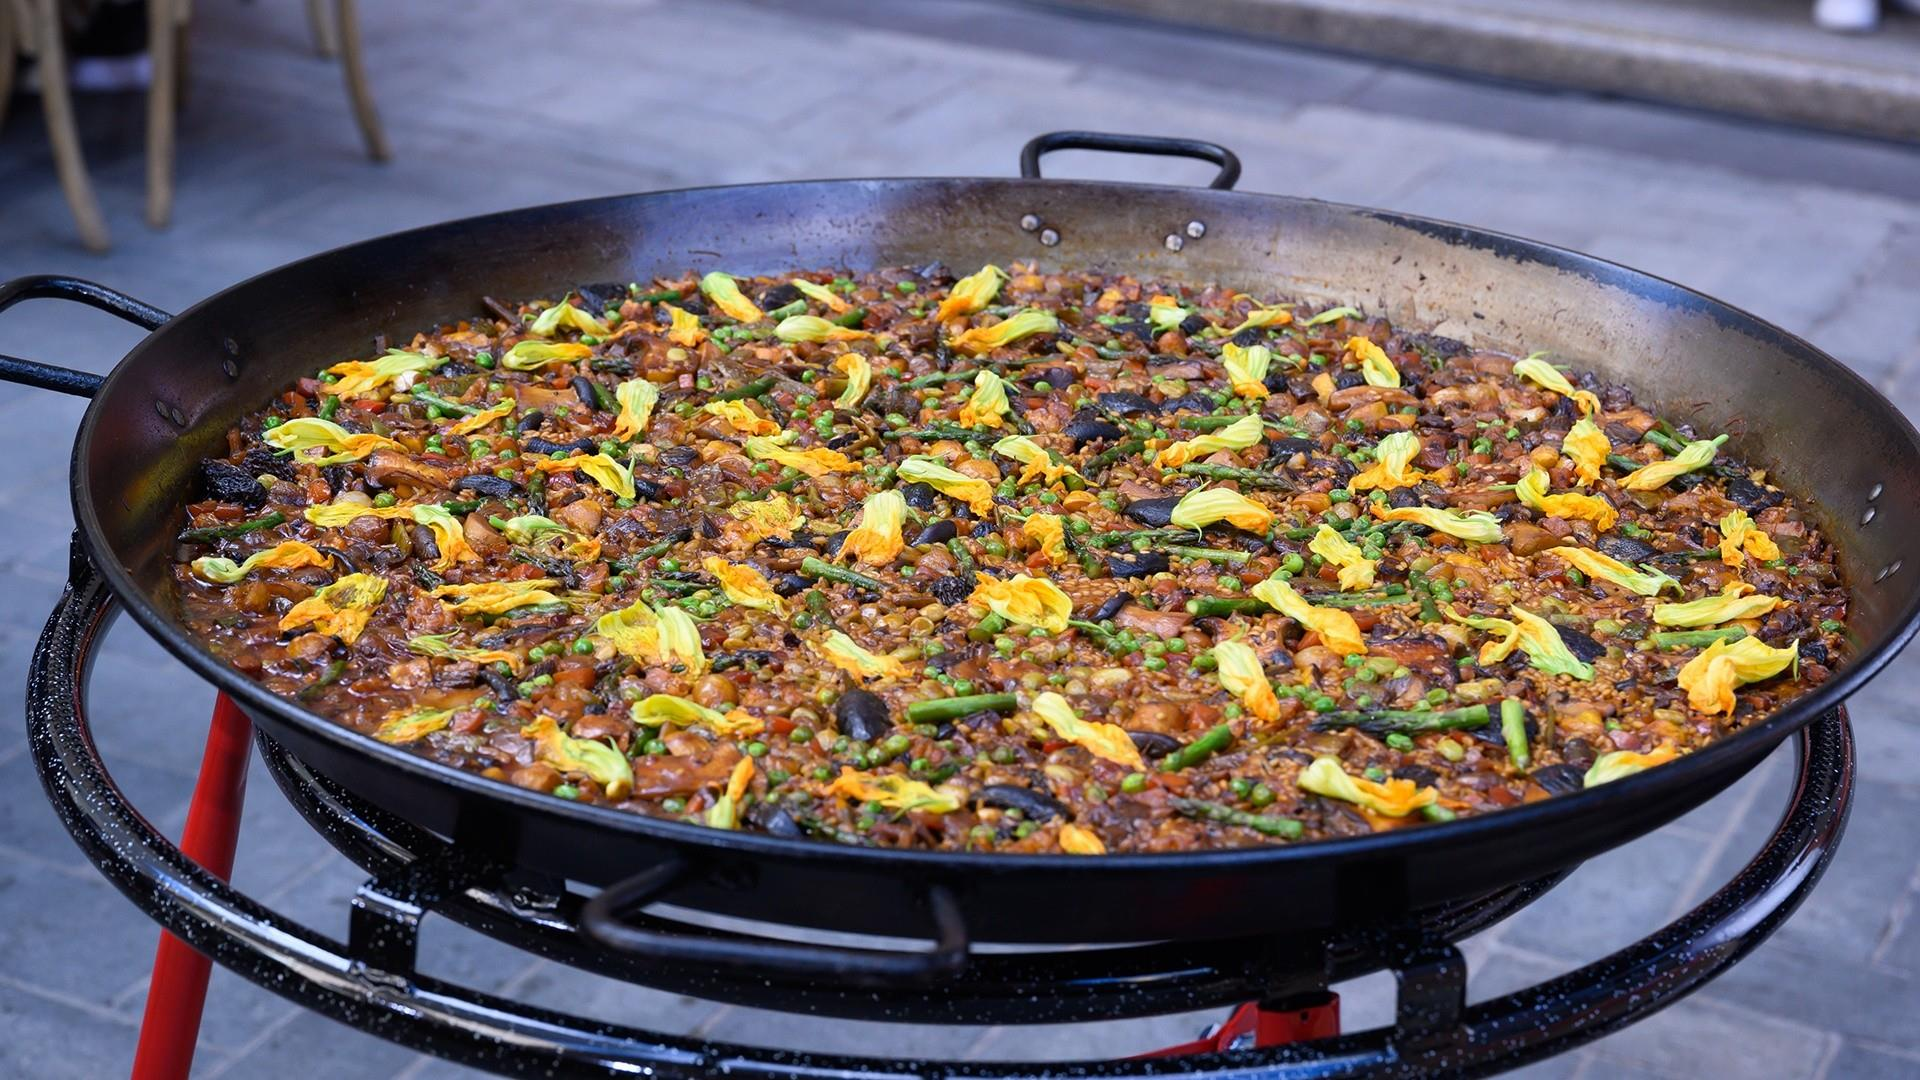 Chef José Andrés shares a vegetable paella and a life lesson, too